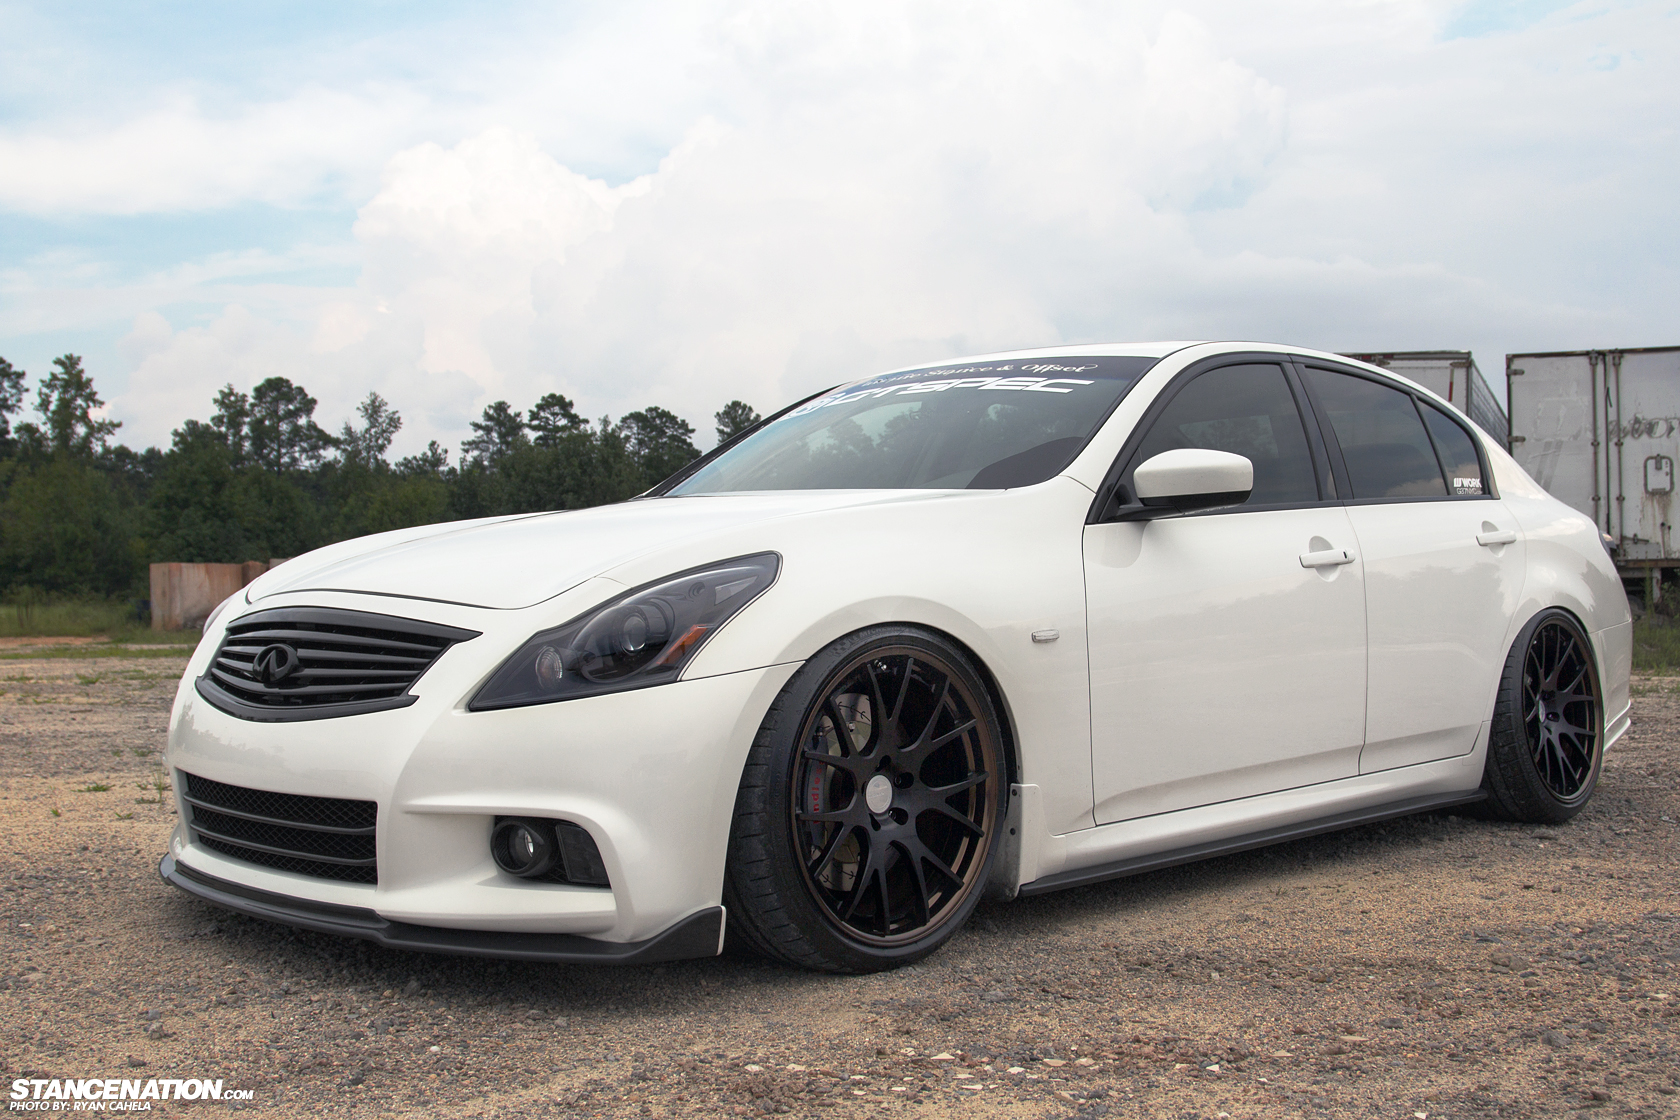 Meet Layla Christopher S 600 Hp Infiniti G37 Sedan Stancenation Form Function